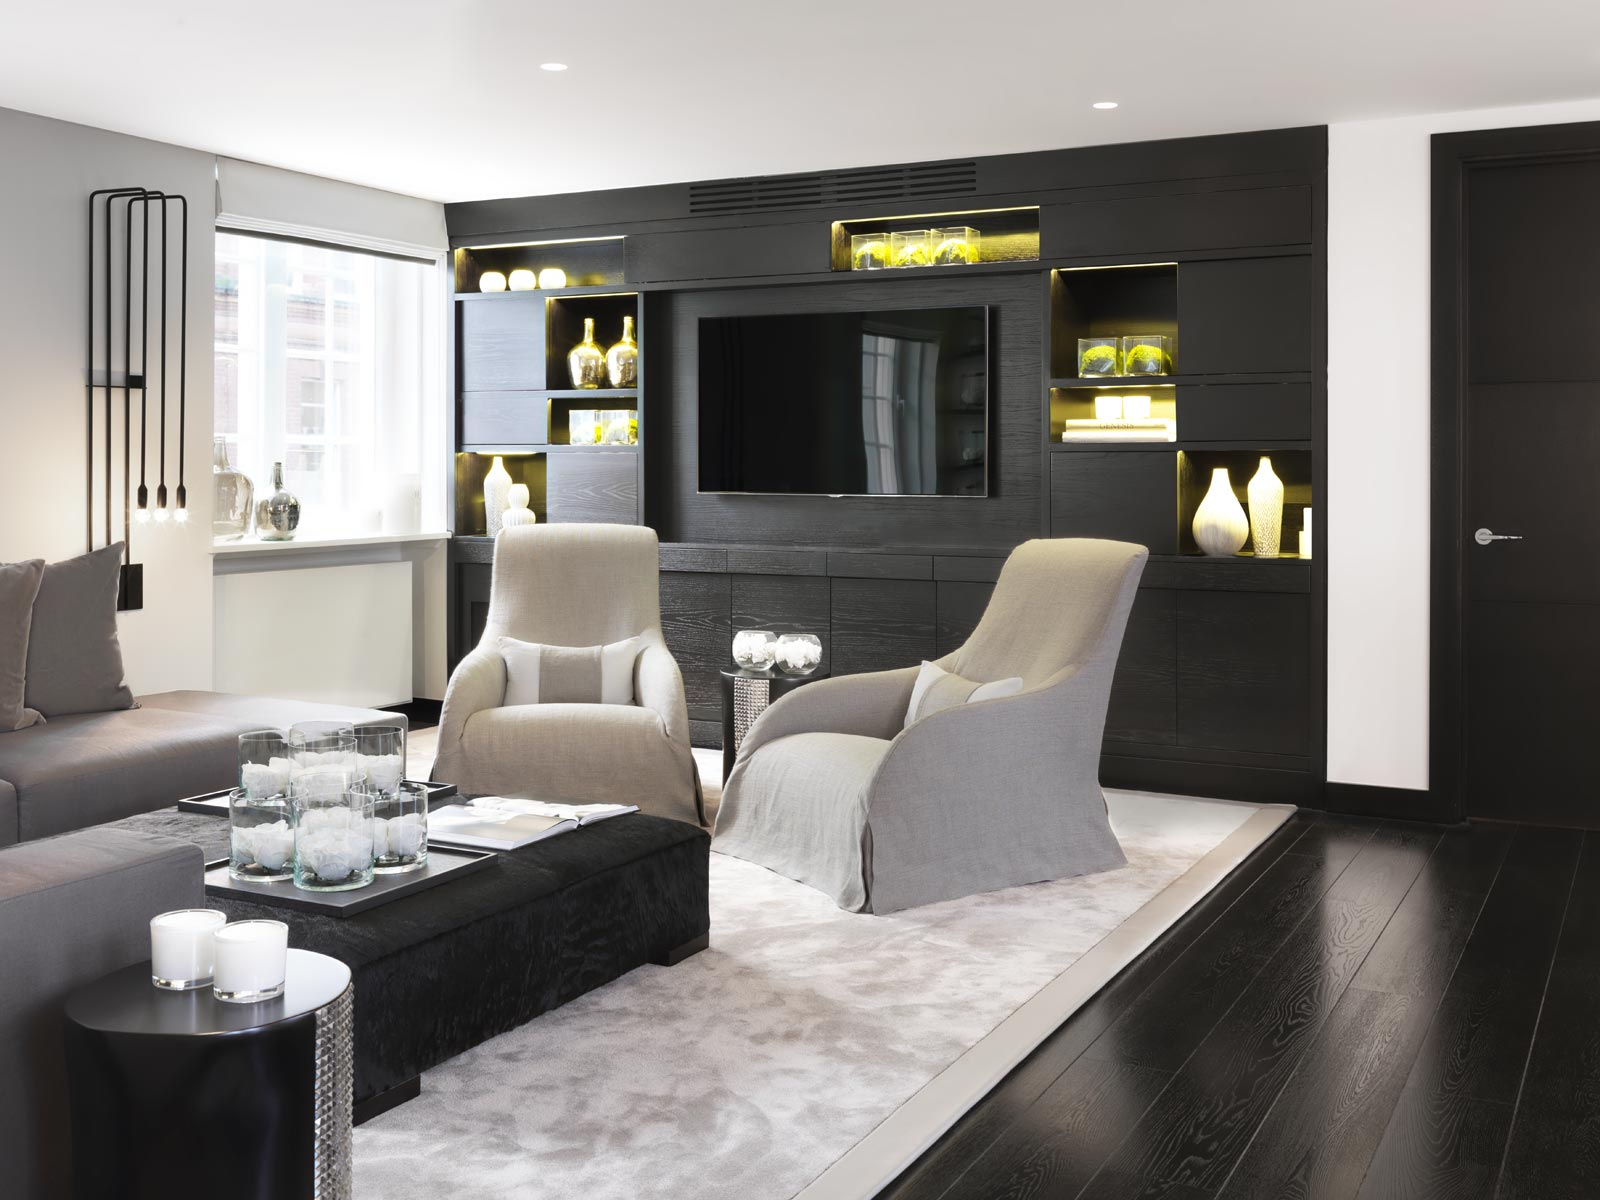 Top 10 Kelly Hoppen Design Ideas : pied a terre london3 from www.luxxu.net size 1600 x 1200 jpeg 175kB